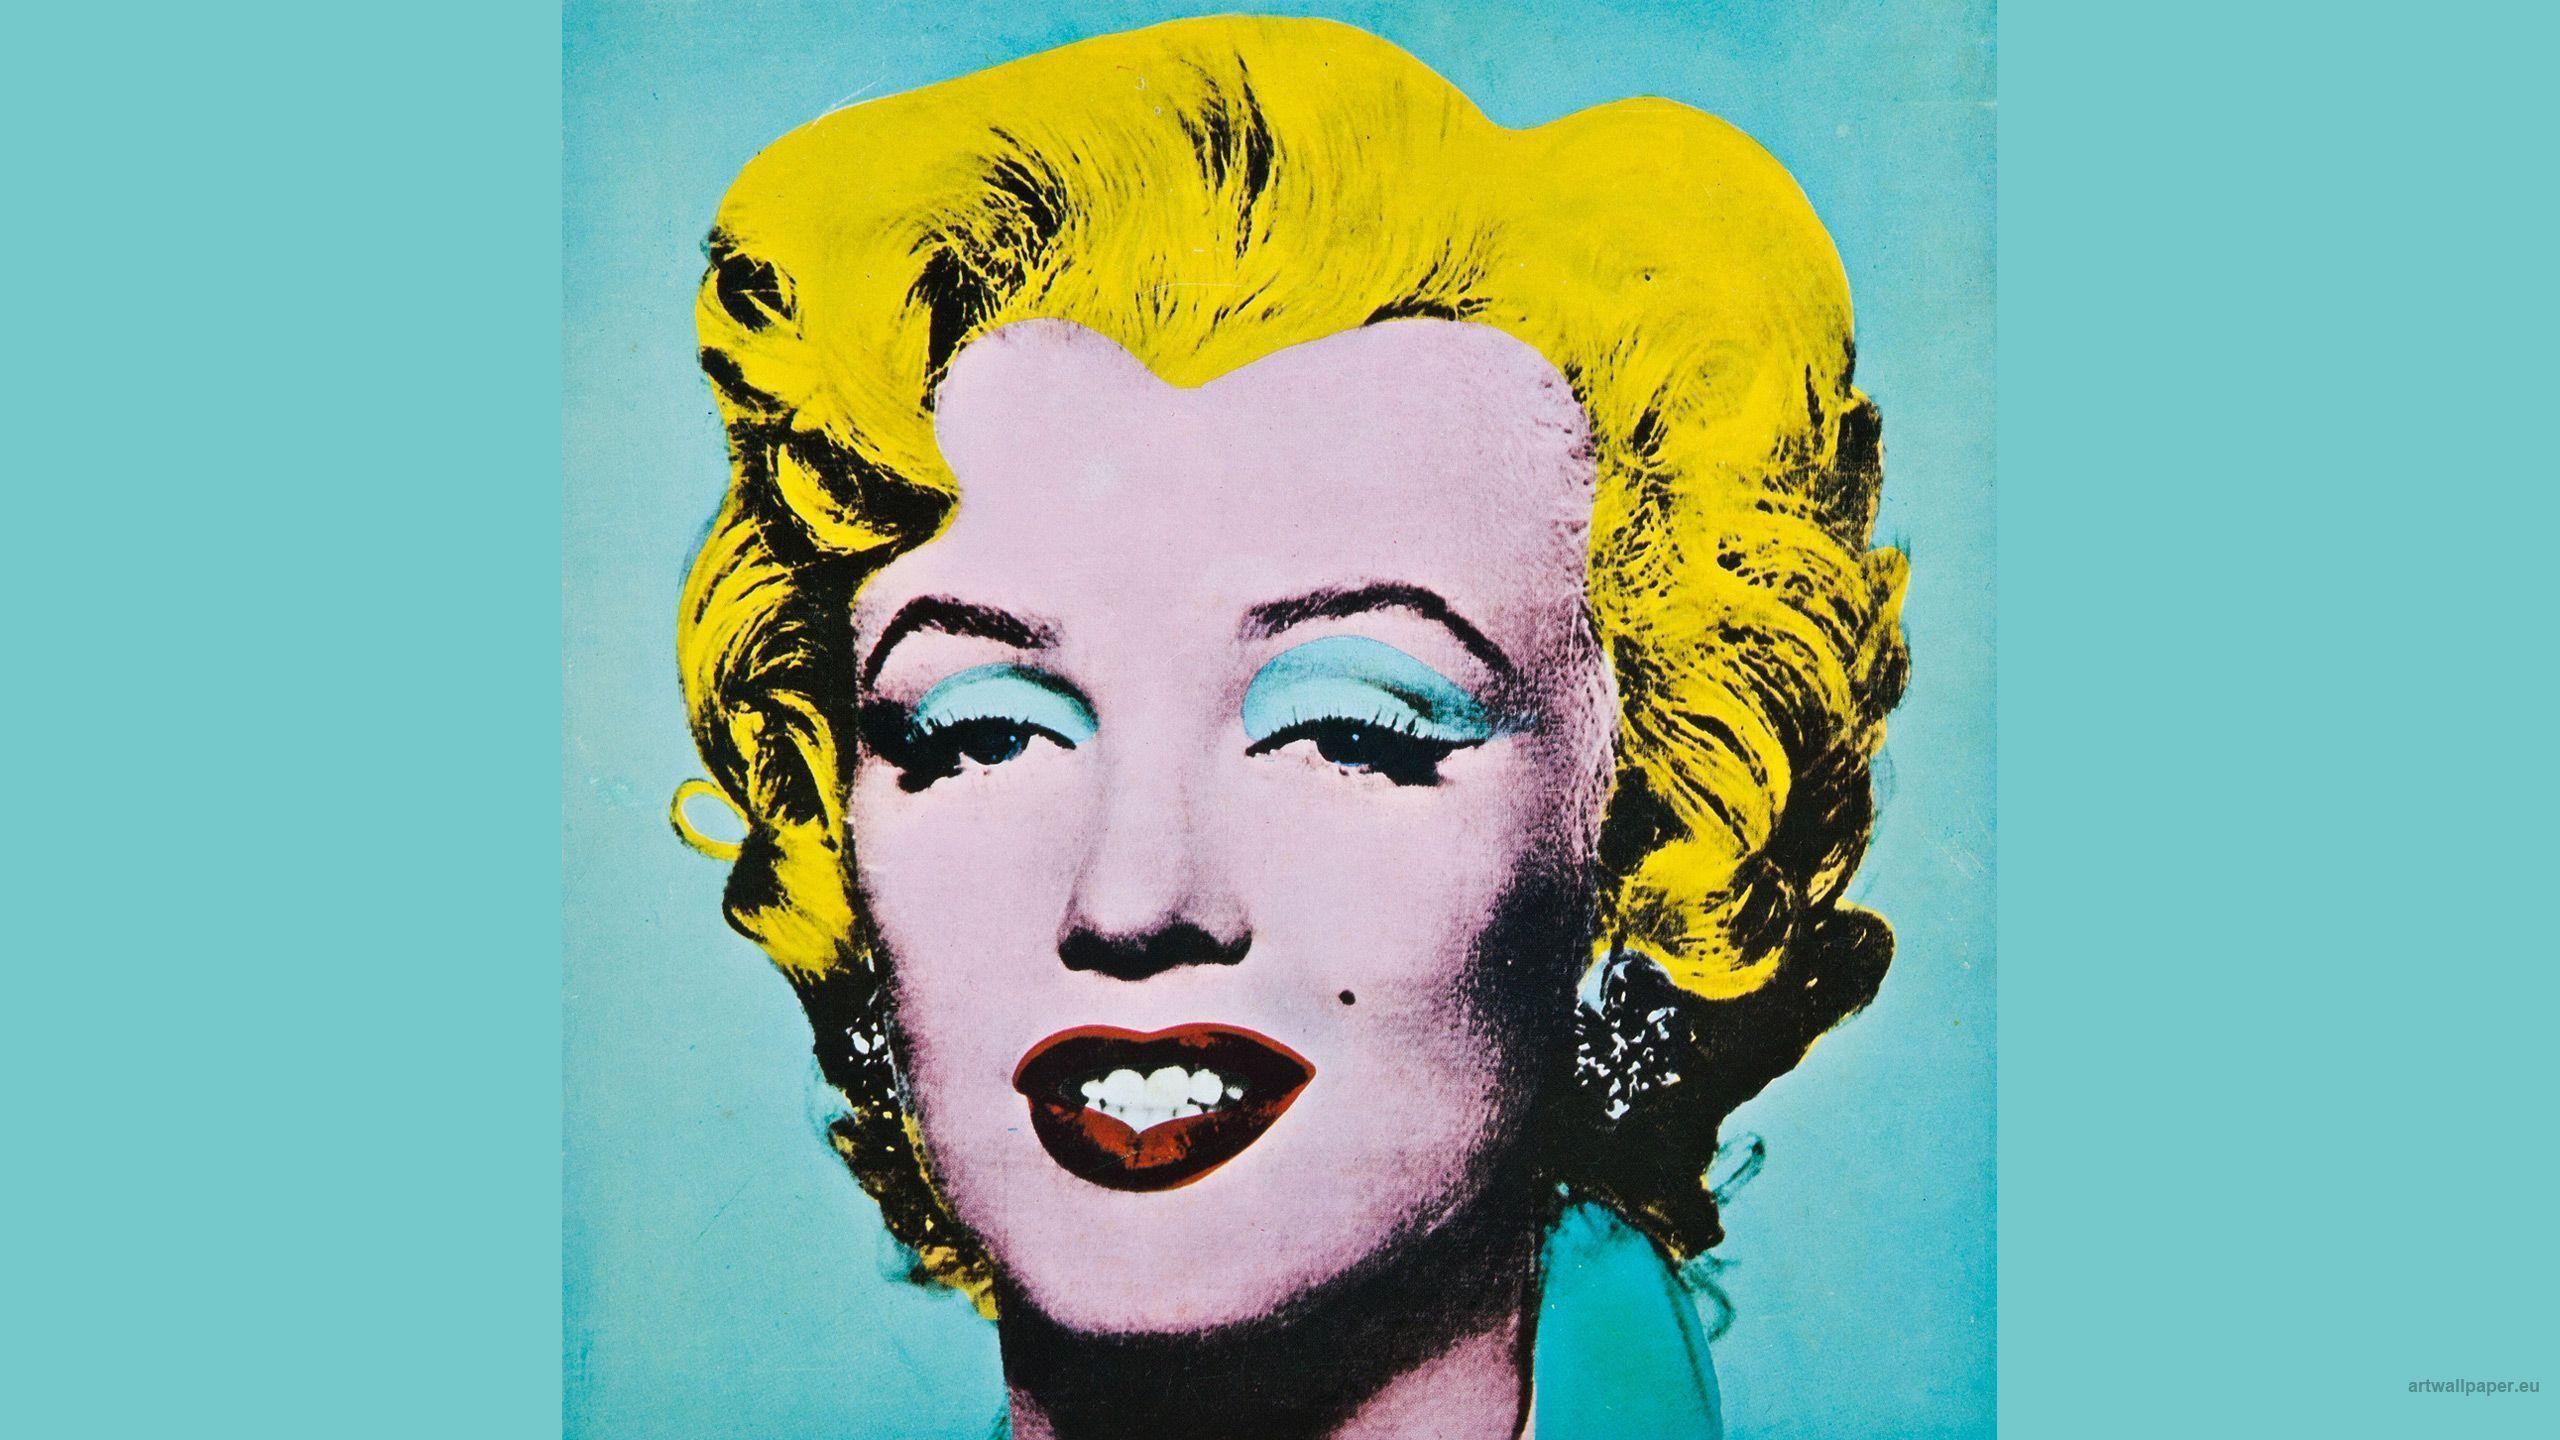 Marilyn Monroe Andy Warhol Wallpaper HD by HD Wallpapers Daily